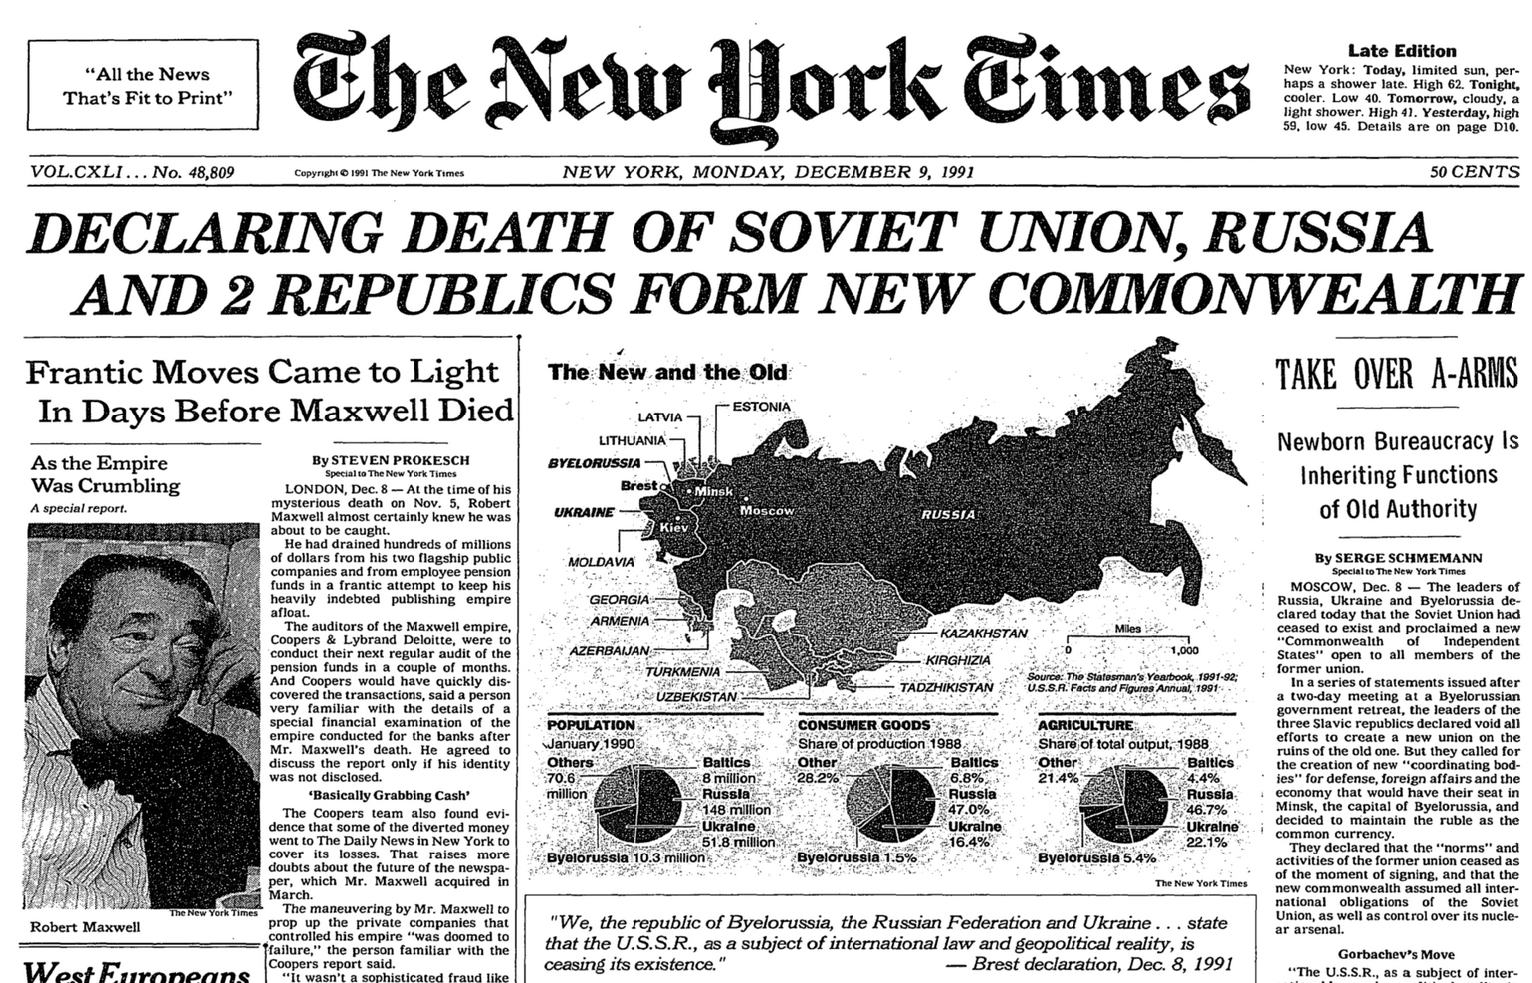 an analysis of soviet control in 1989 The other thing is that by 1989, while there were few true believers who saw the soviet union as a workers' paradise, there were still plenty of lefties left who thought the bloc was an.